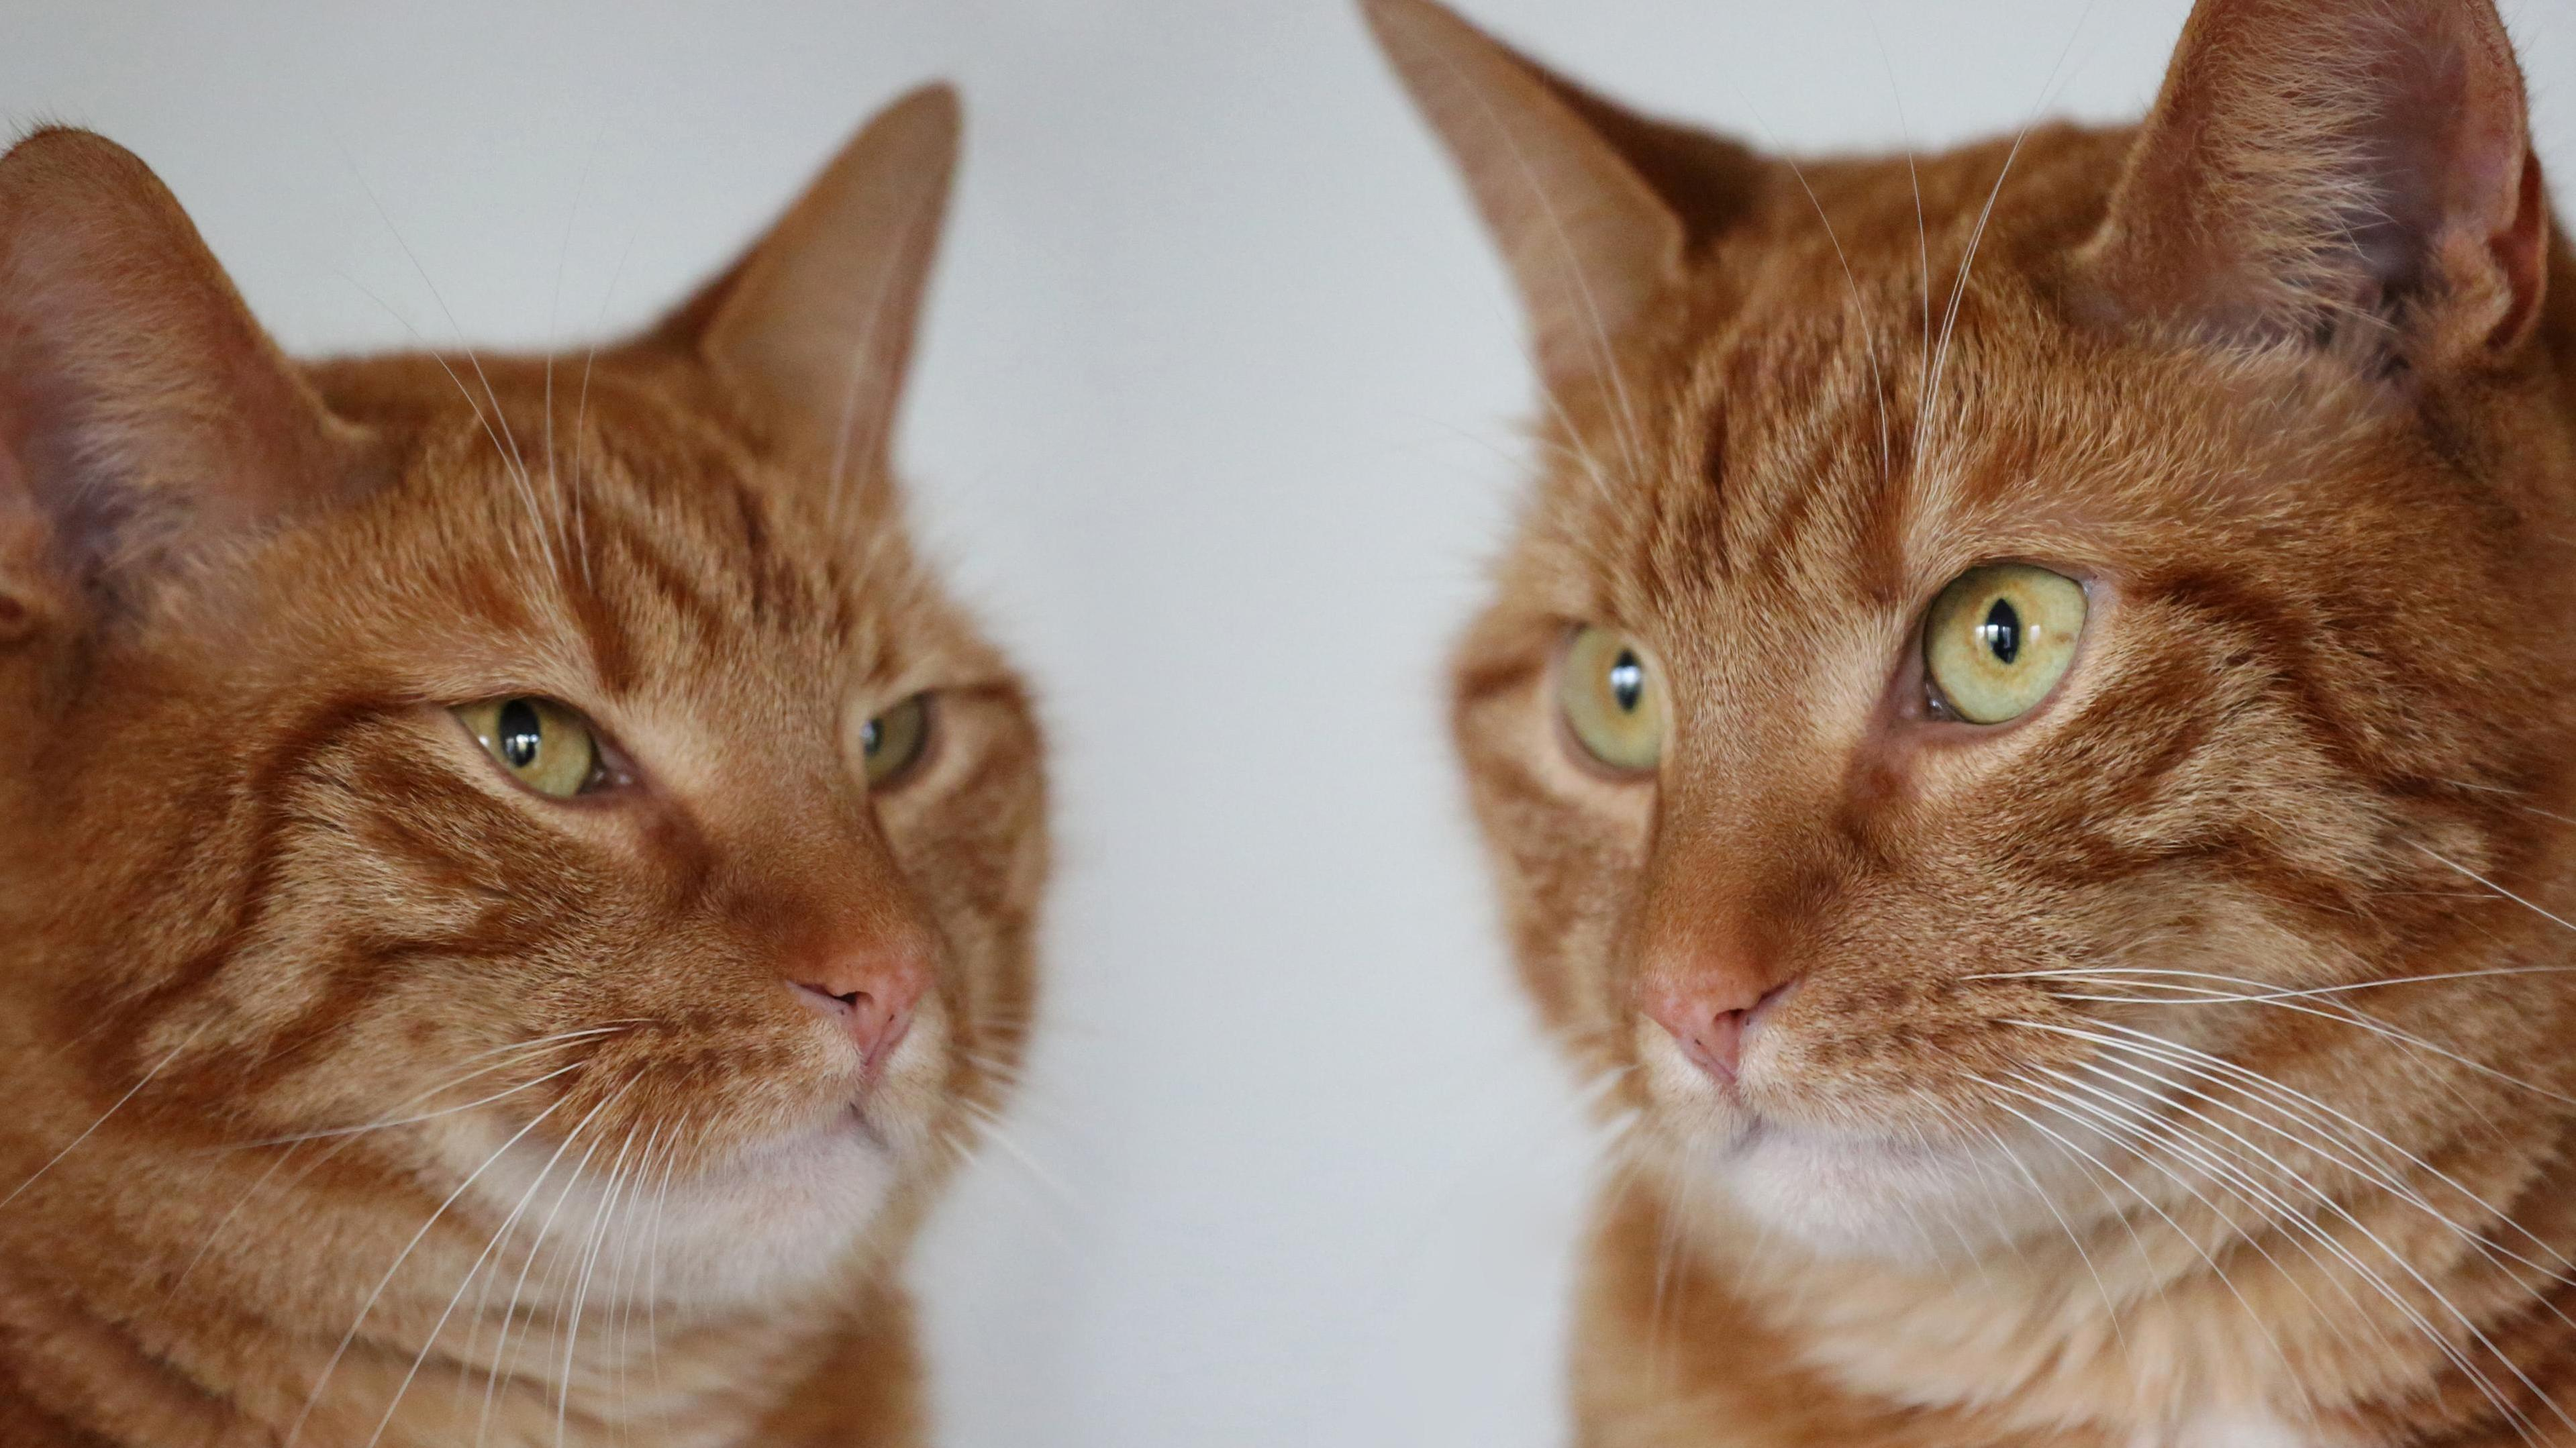 Took some pictures of my cat, who i think looks gorgeous, despite originally having been found in a stray nest.